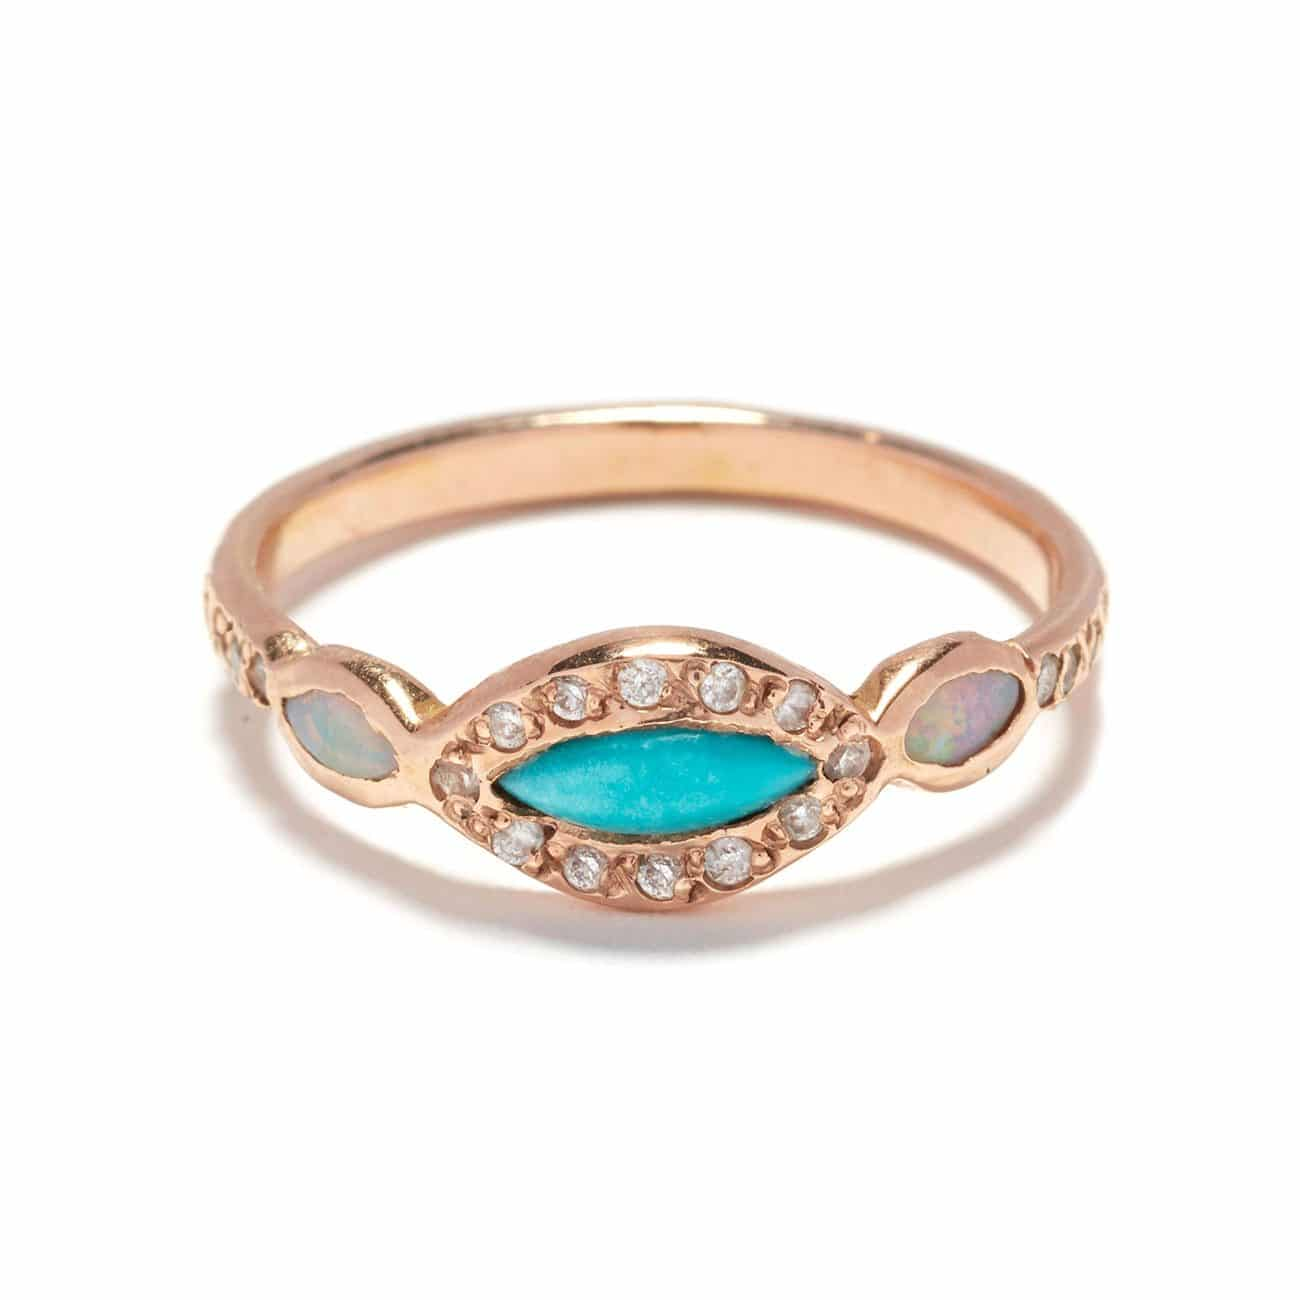 Turquoise Opal Classic Eye Ring pink gold